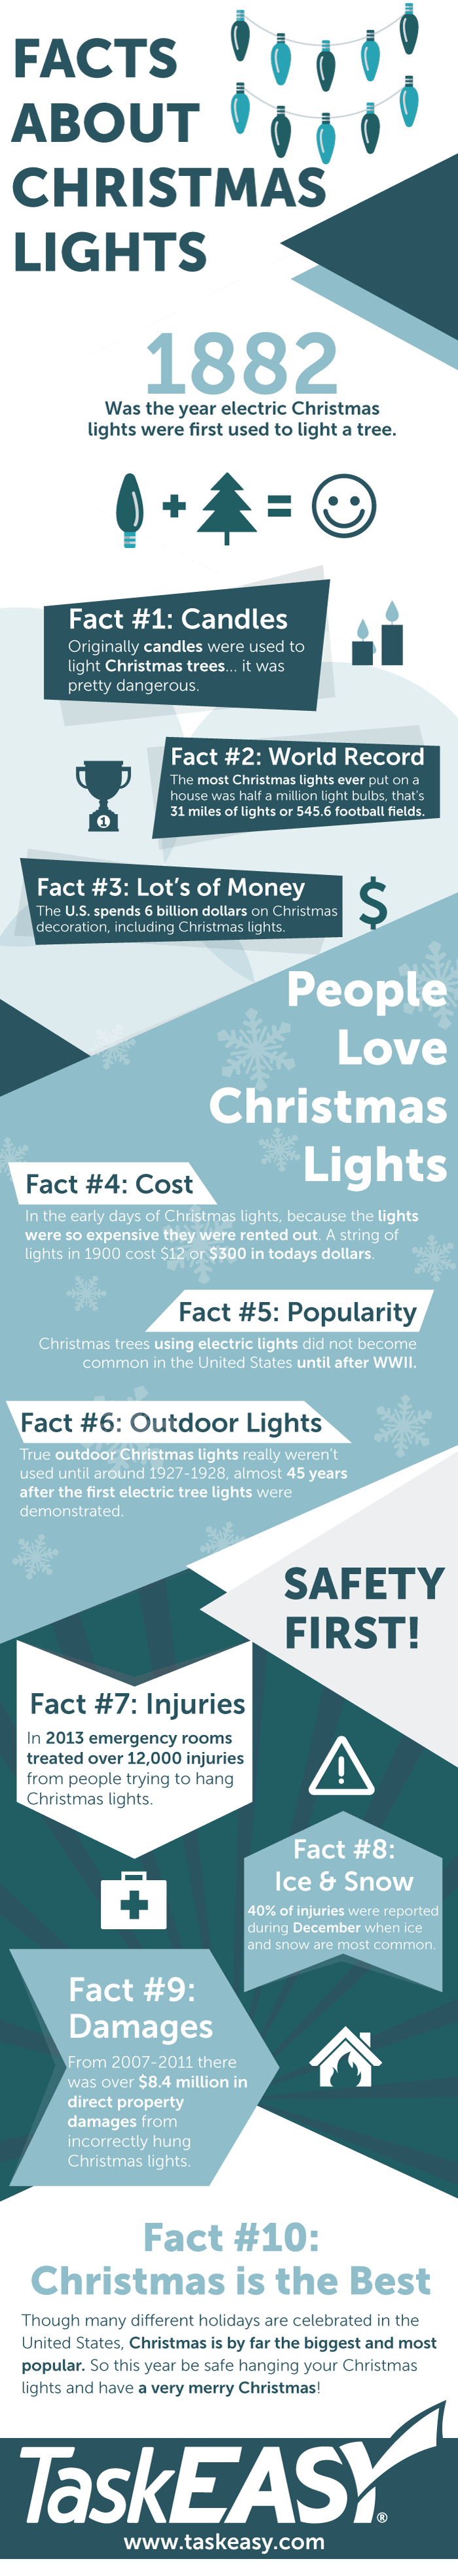 Facts About Christmas Lights